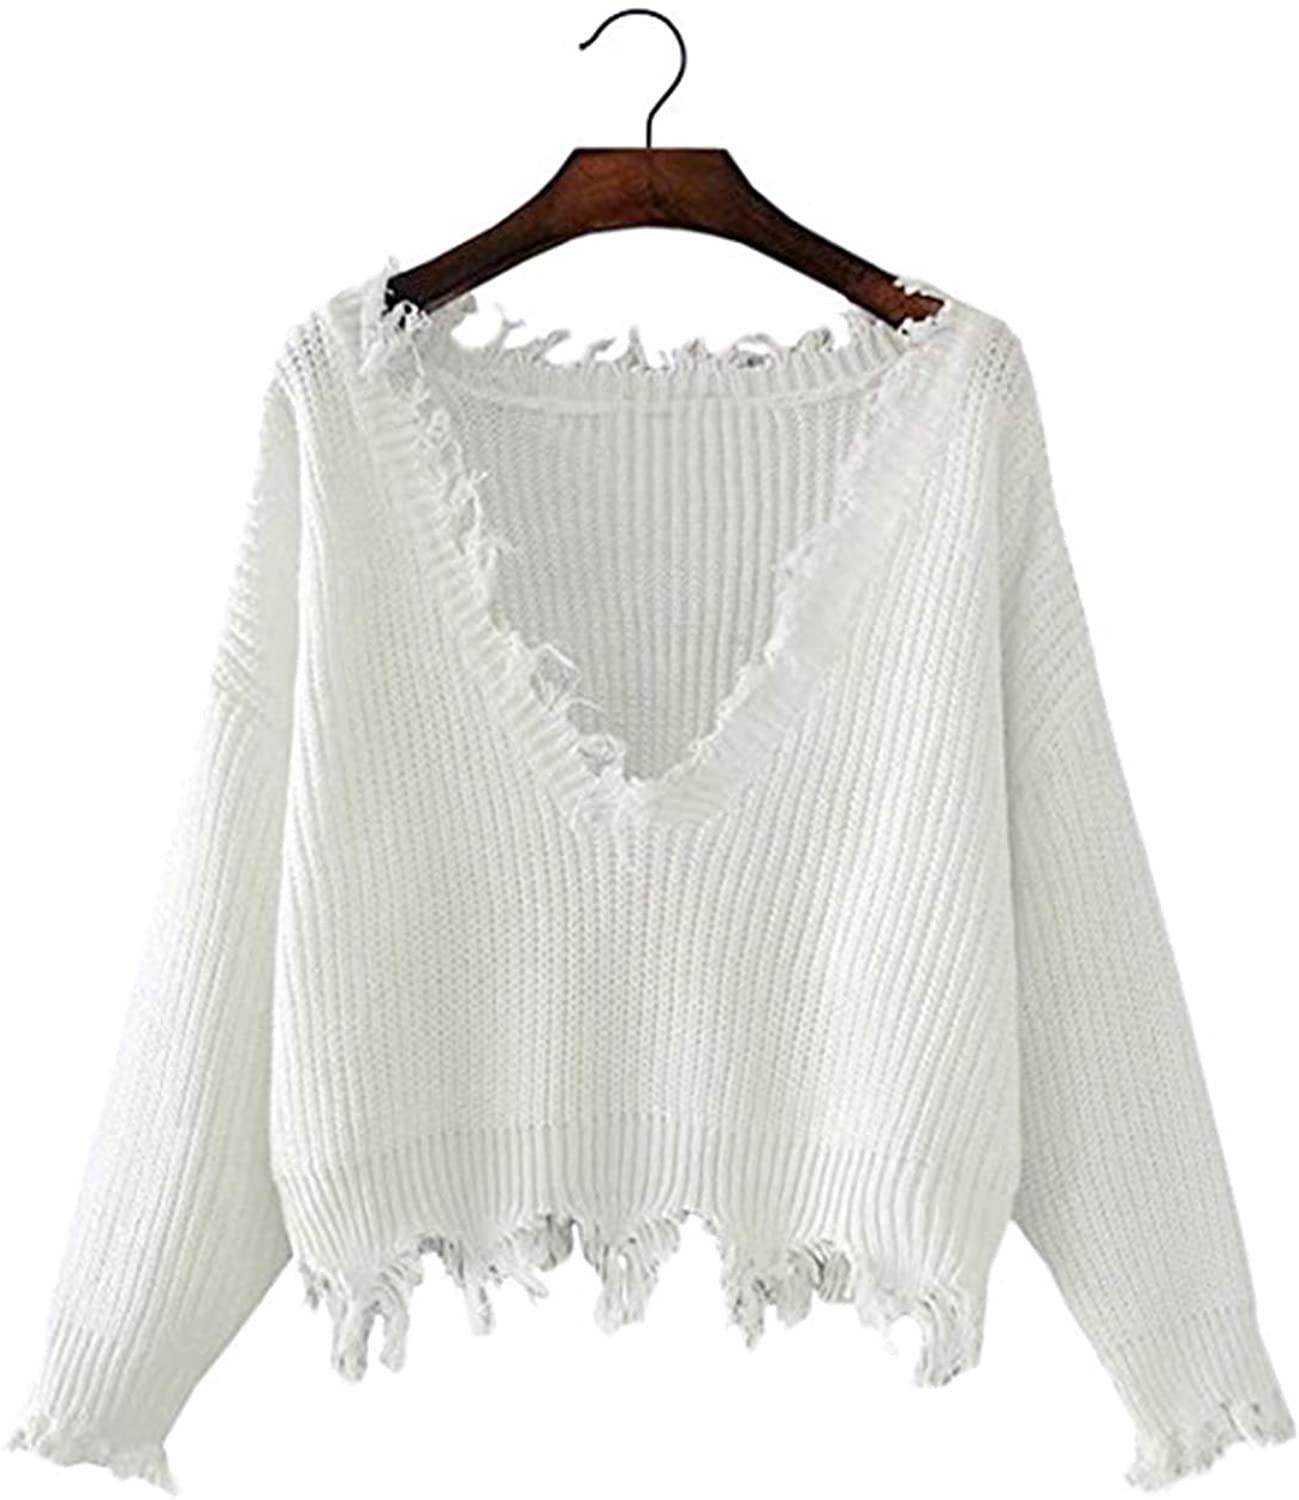 Arjungo Women's Solid V Neck Ripped Hem Long Sleeve Frayed Sweater Knitted Pullover Crop Top